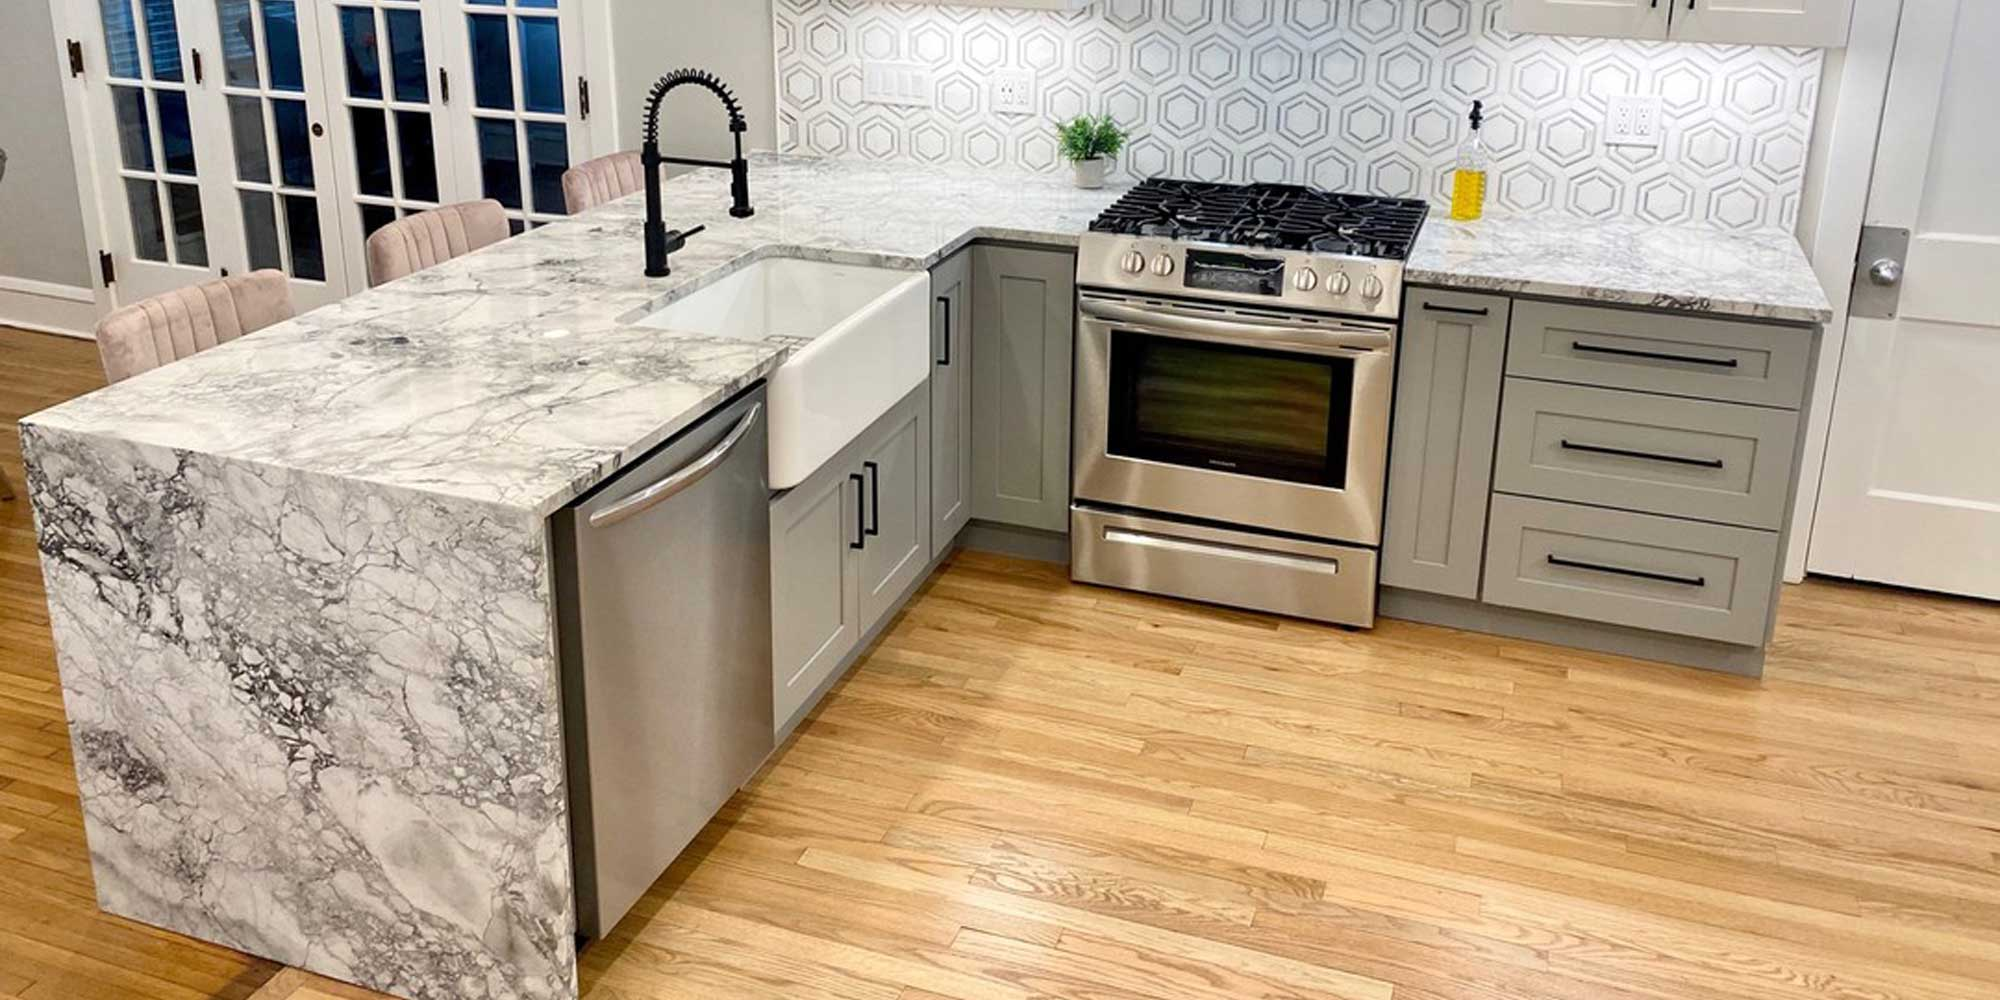 gray cabinets with silver dishwasher and stove with white sink and black faucet and marble countertop